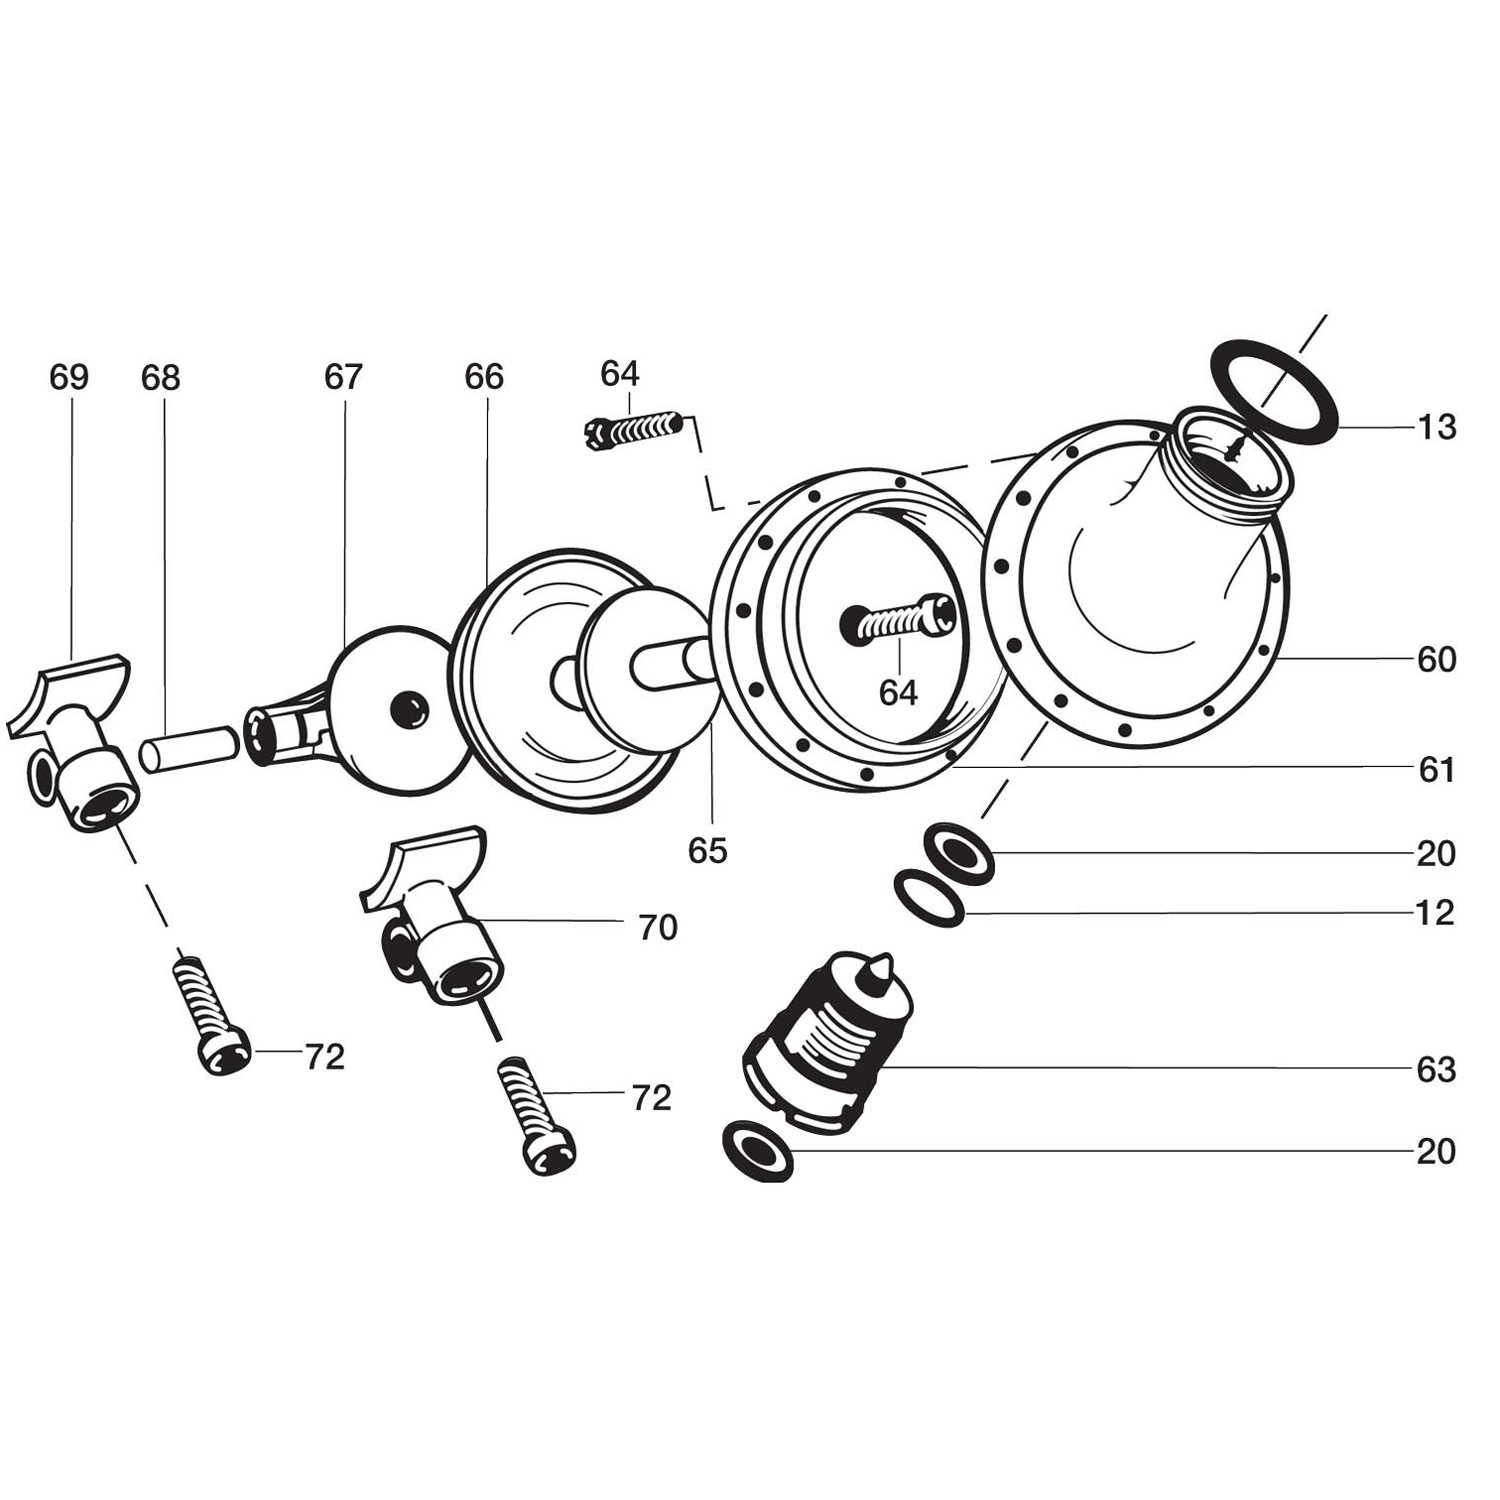 Shur Flo Diaphragm Pump Wiring Diagram Fimco Diaphragm